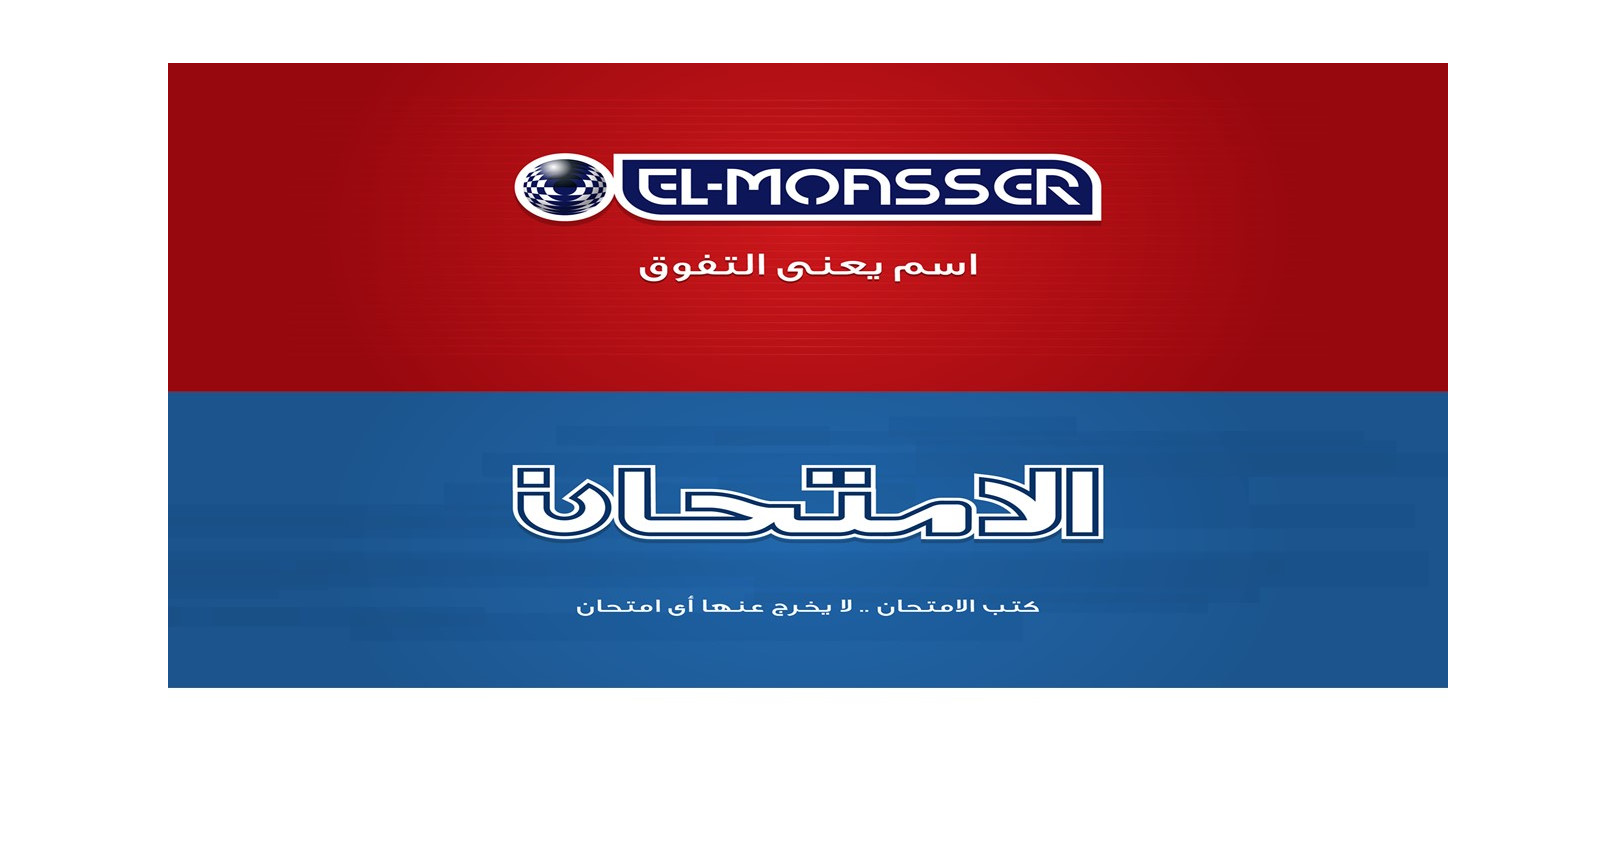 صورة Job: Activation Area Supervisor(Assiut) at El-Moasser Books in Assiut, Egypt